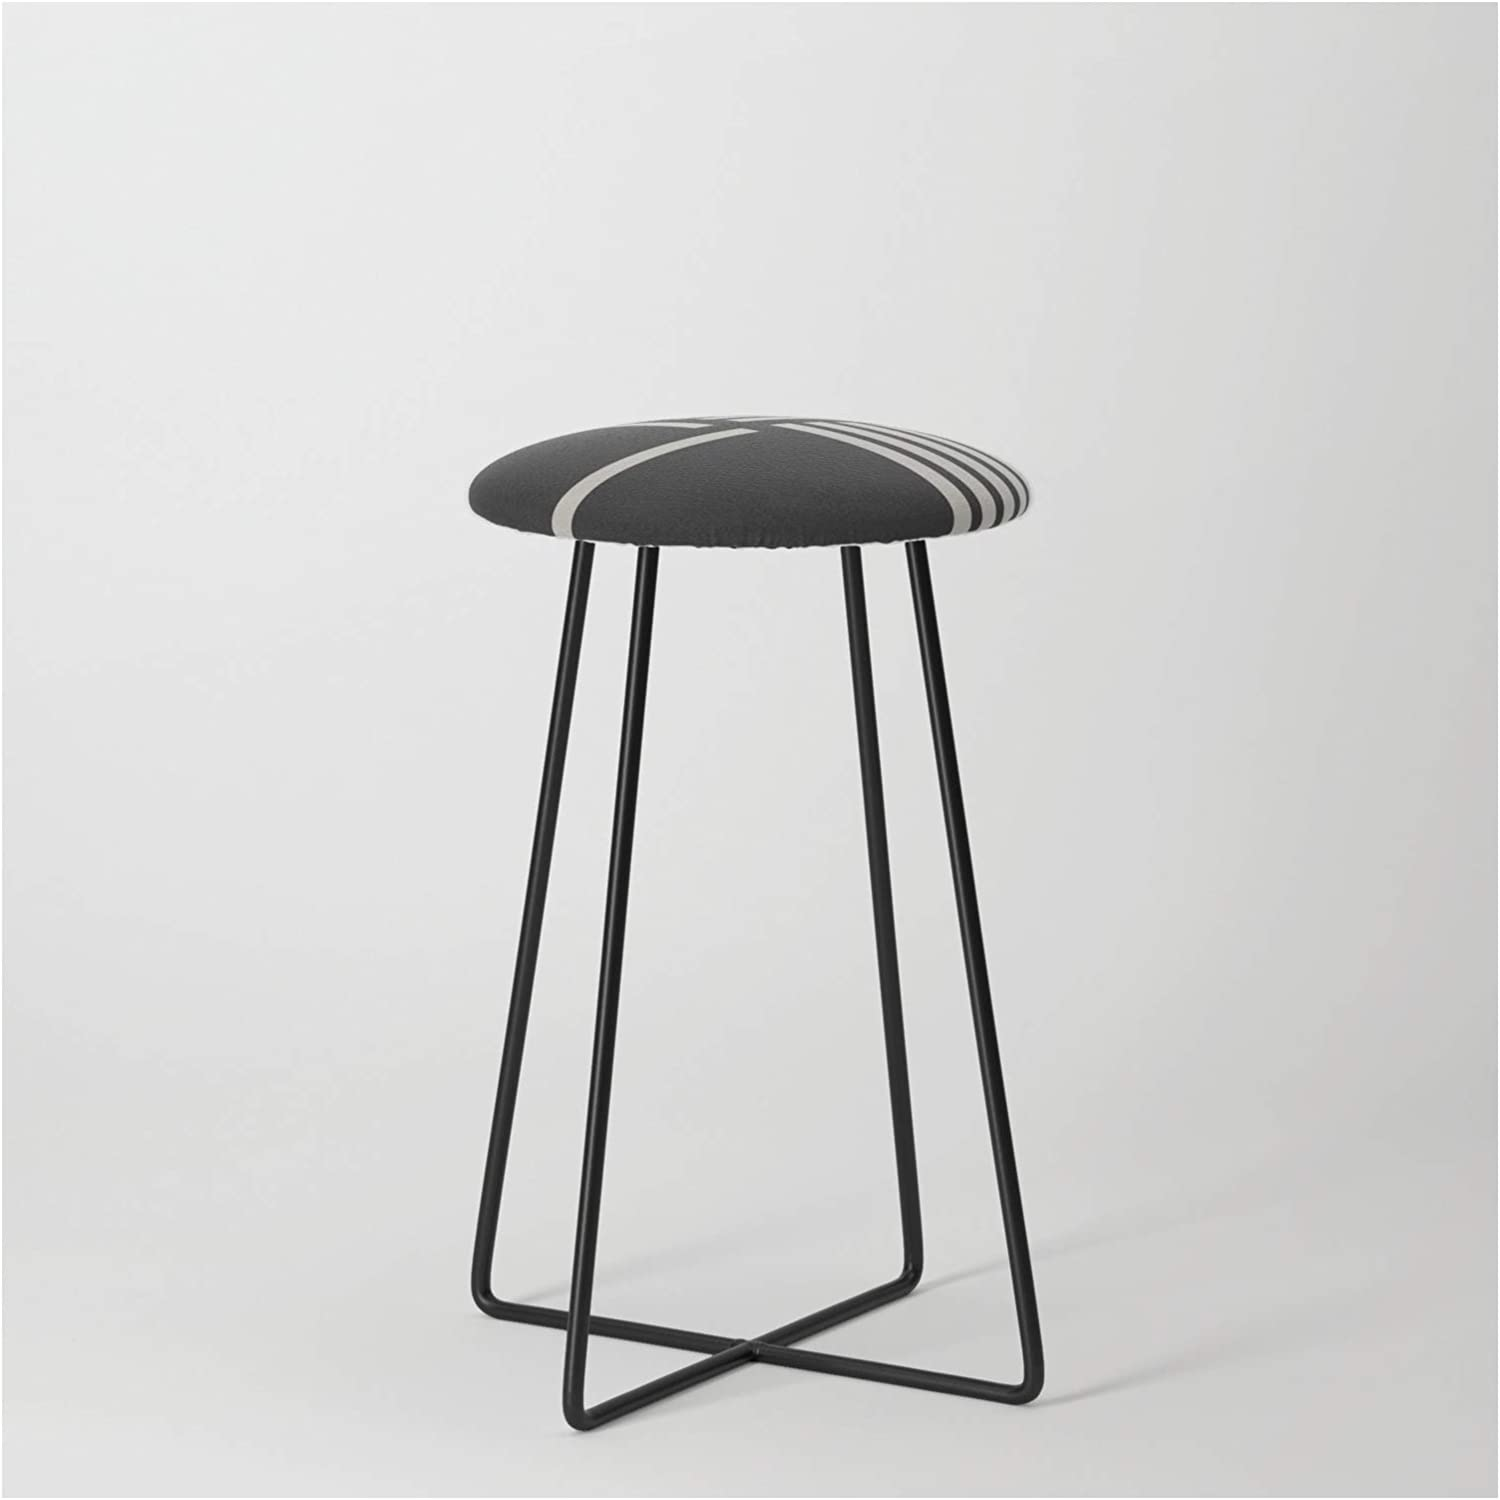 Society6 Dark Side In a Under blast sales popularity of The Moon by on Counter Stool Bl - Absentis